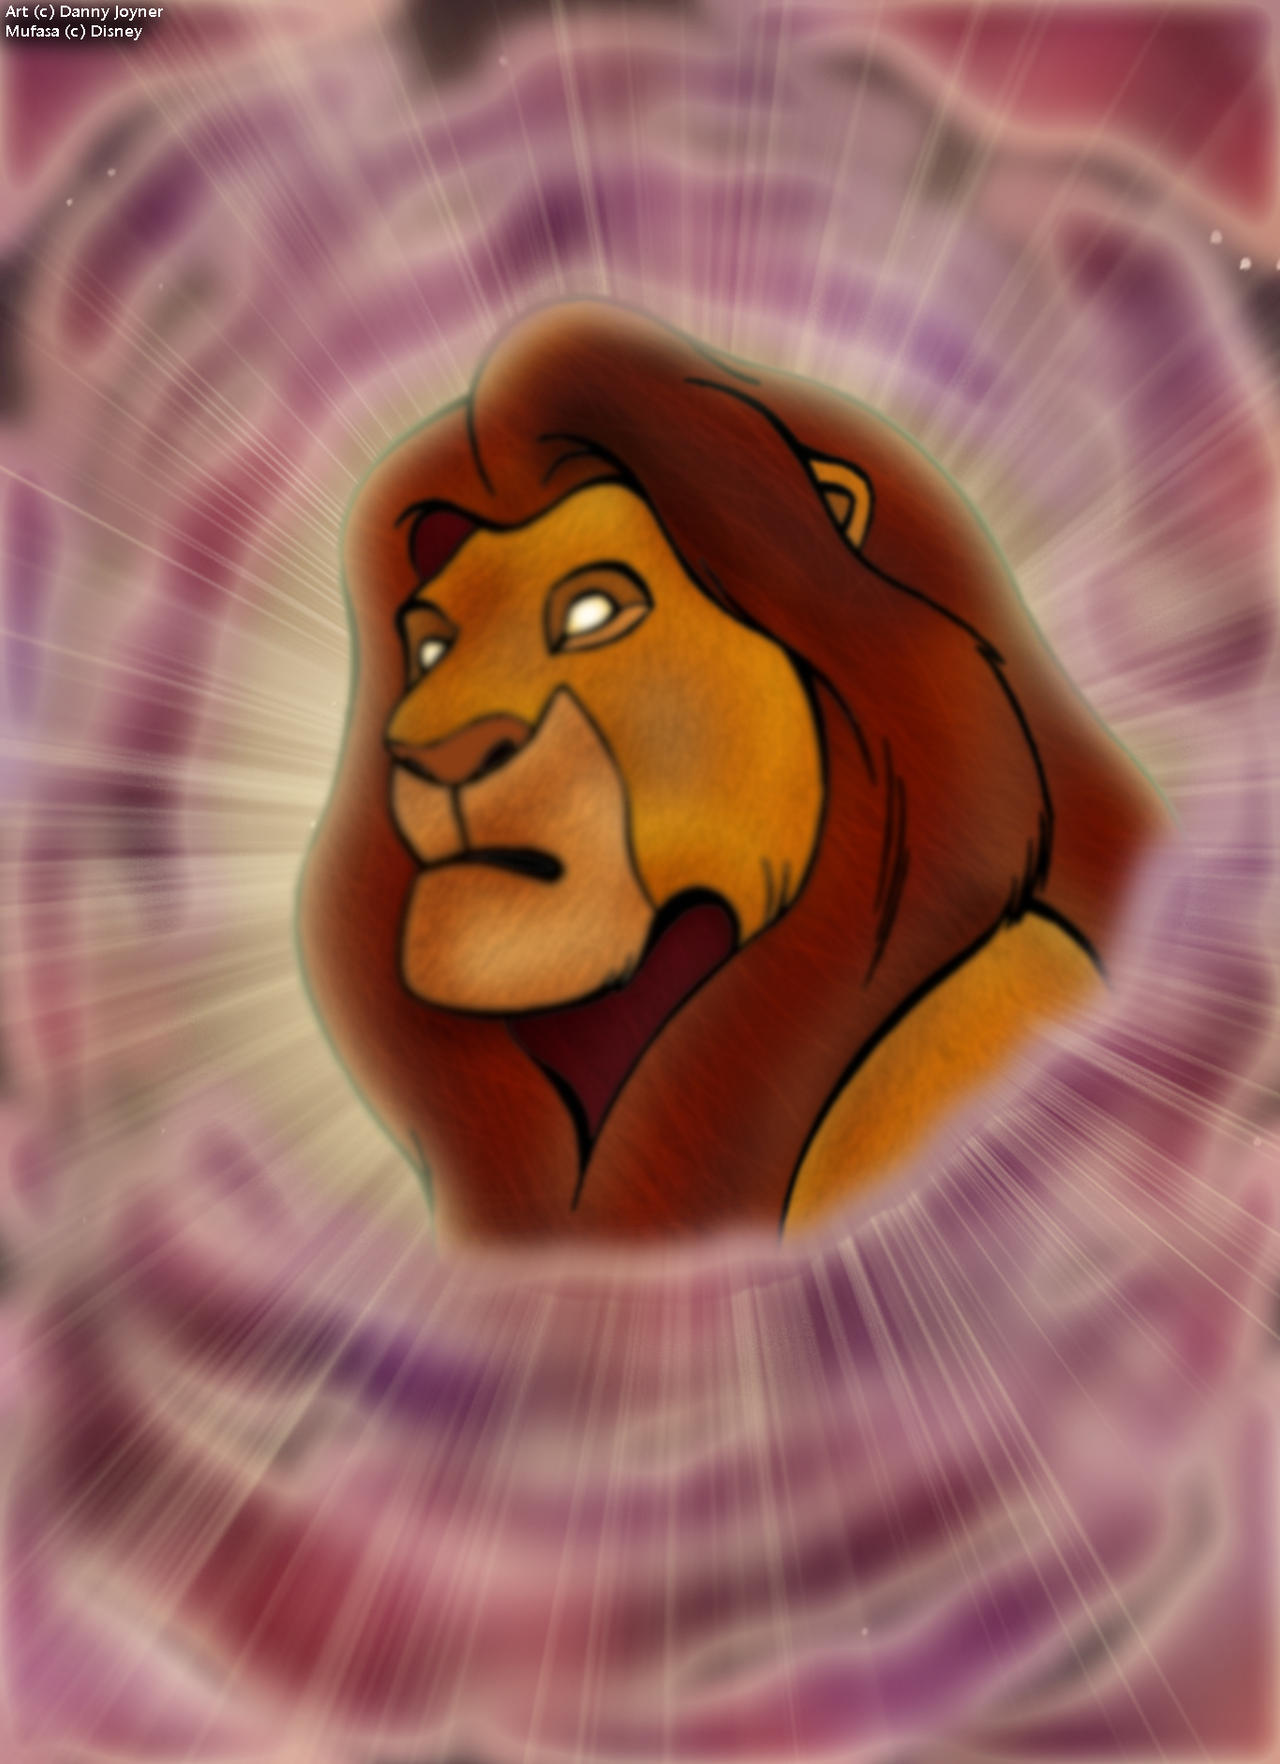 Coloring Book Challenge - Mufasa's Ghost